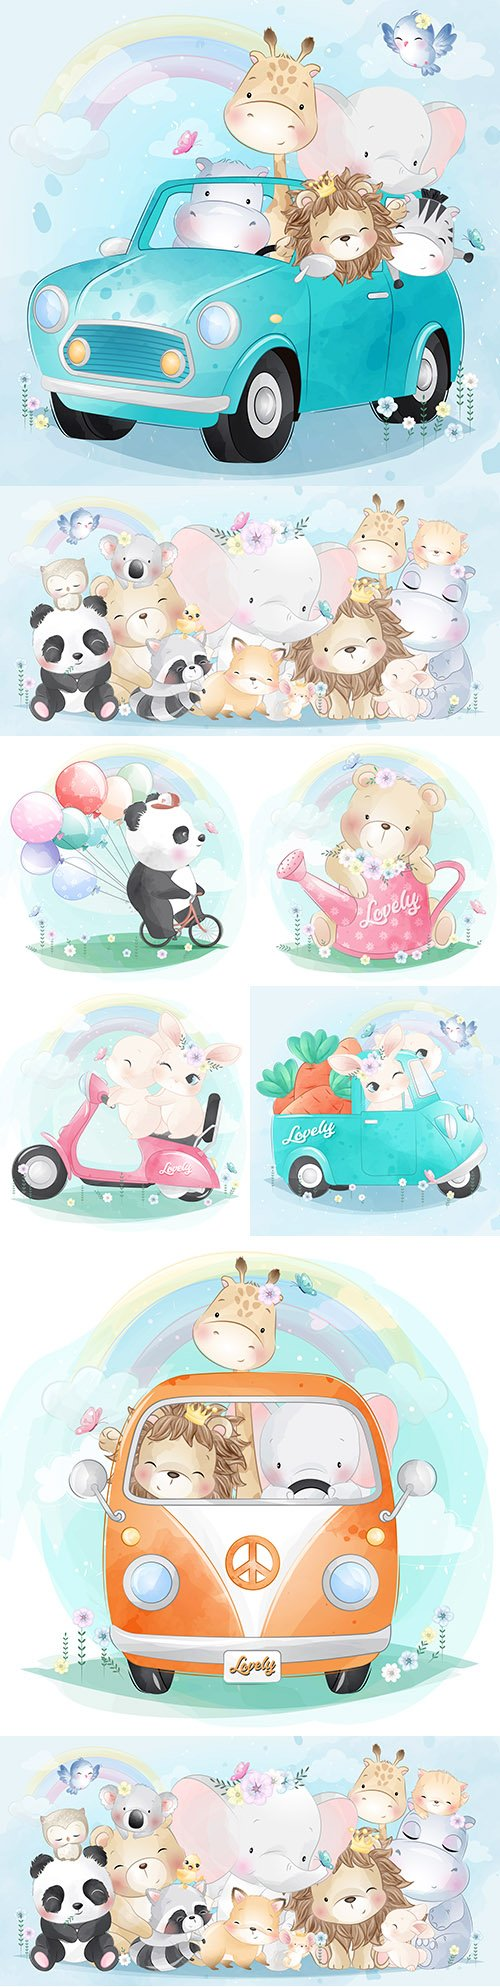 Cute animals with balloons in car illustration watercolor